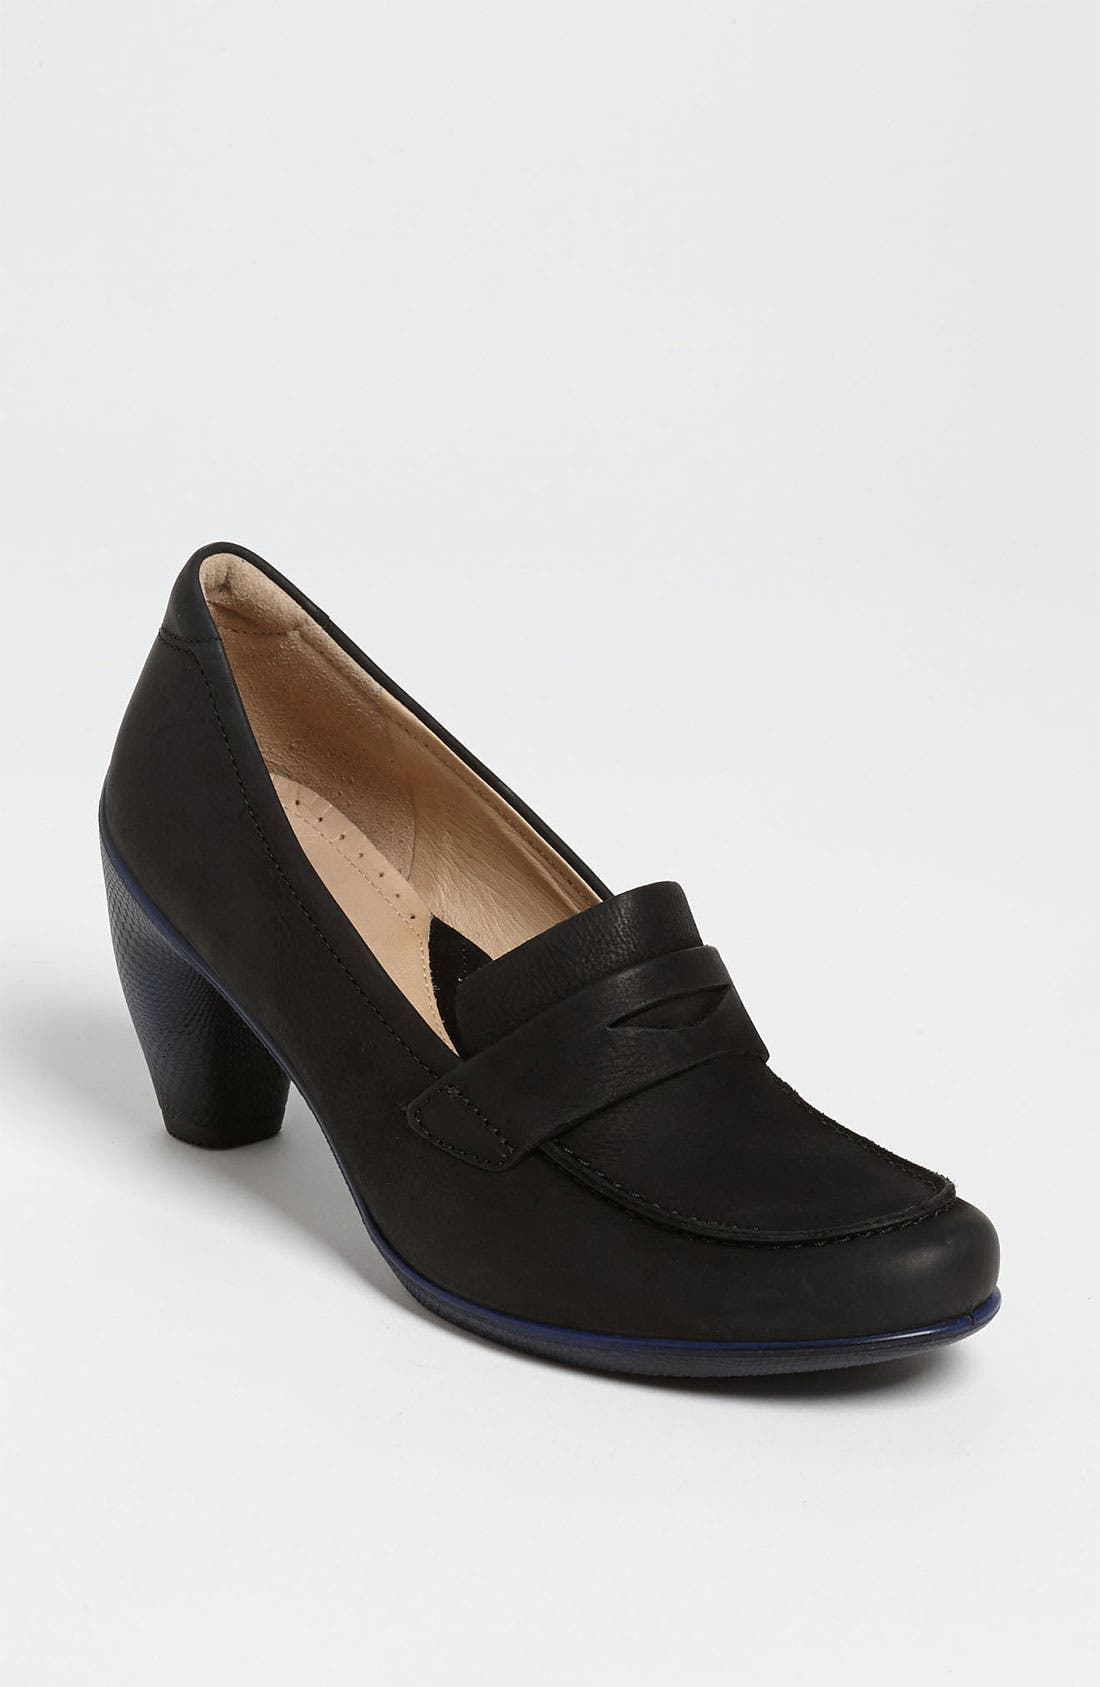 Alternate Image 1 Selected - ECCO 'Sculptured 65 College' Penny Loafer Pump